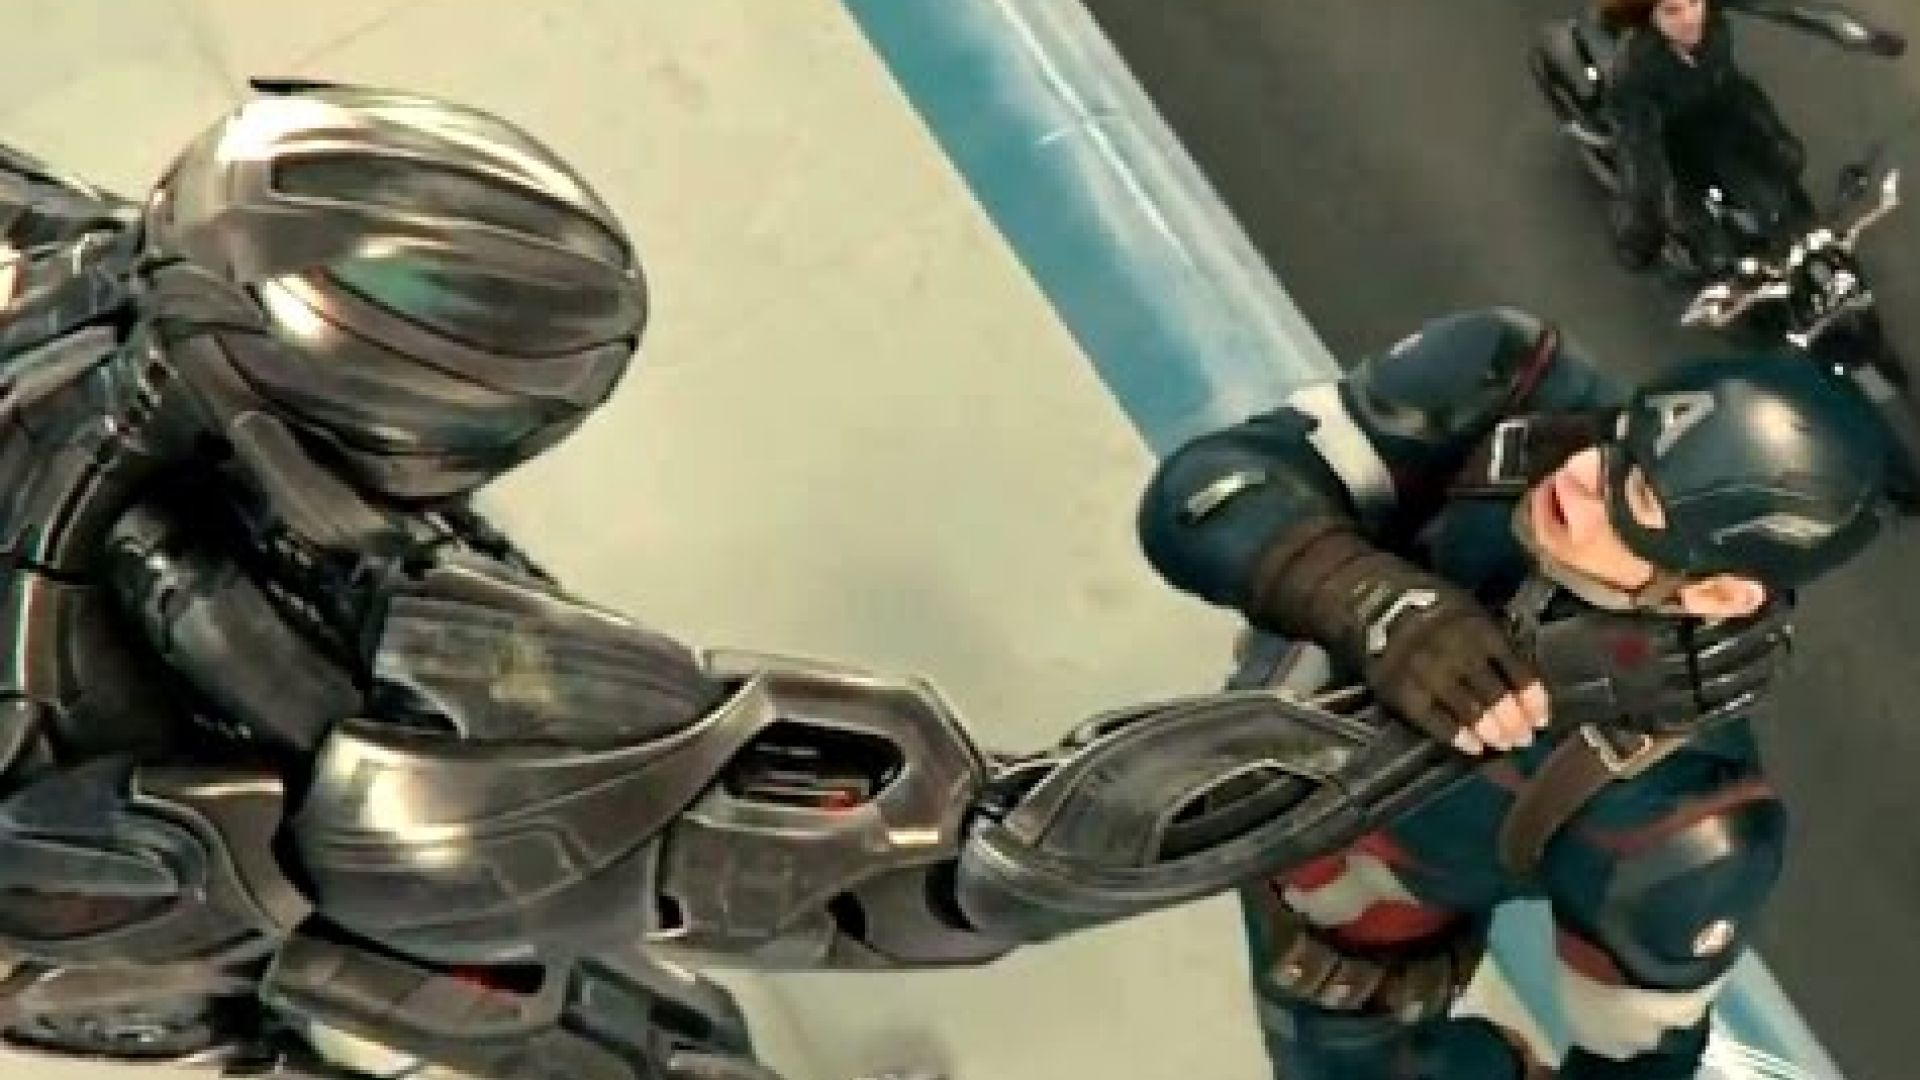 Final Trailer for 'Avengers: Age of Ultron'